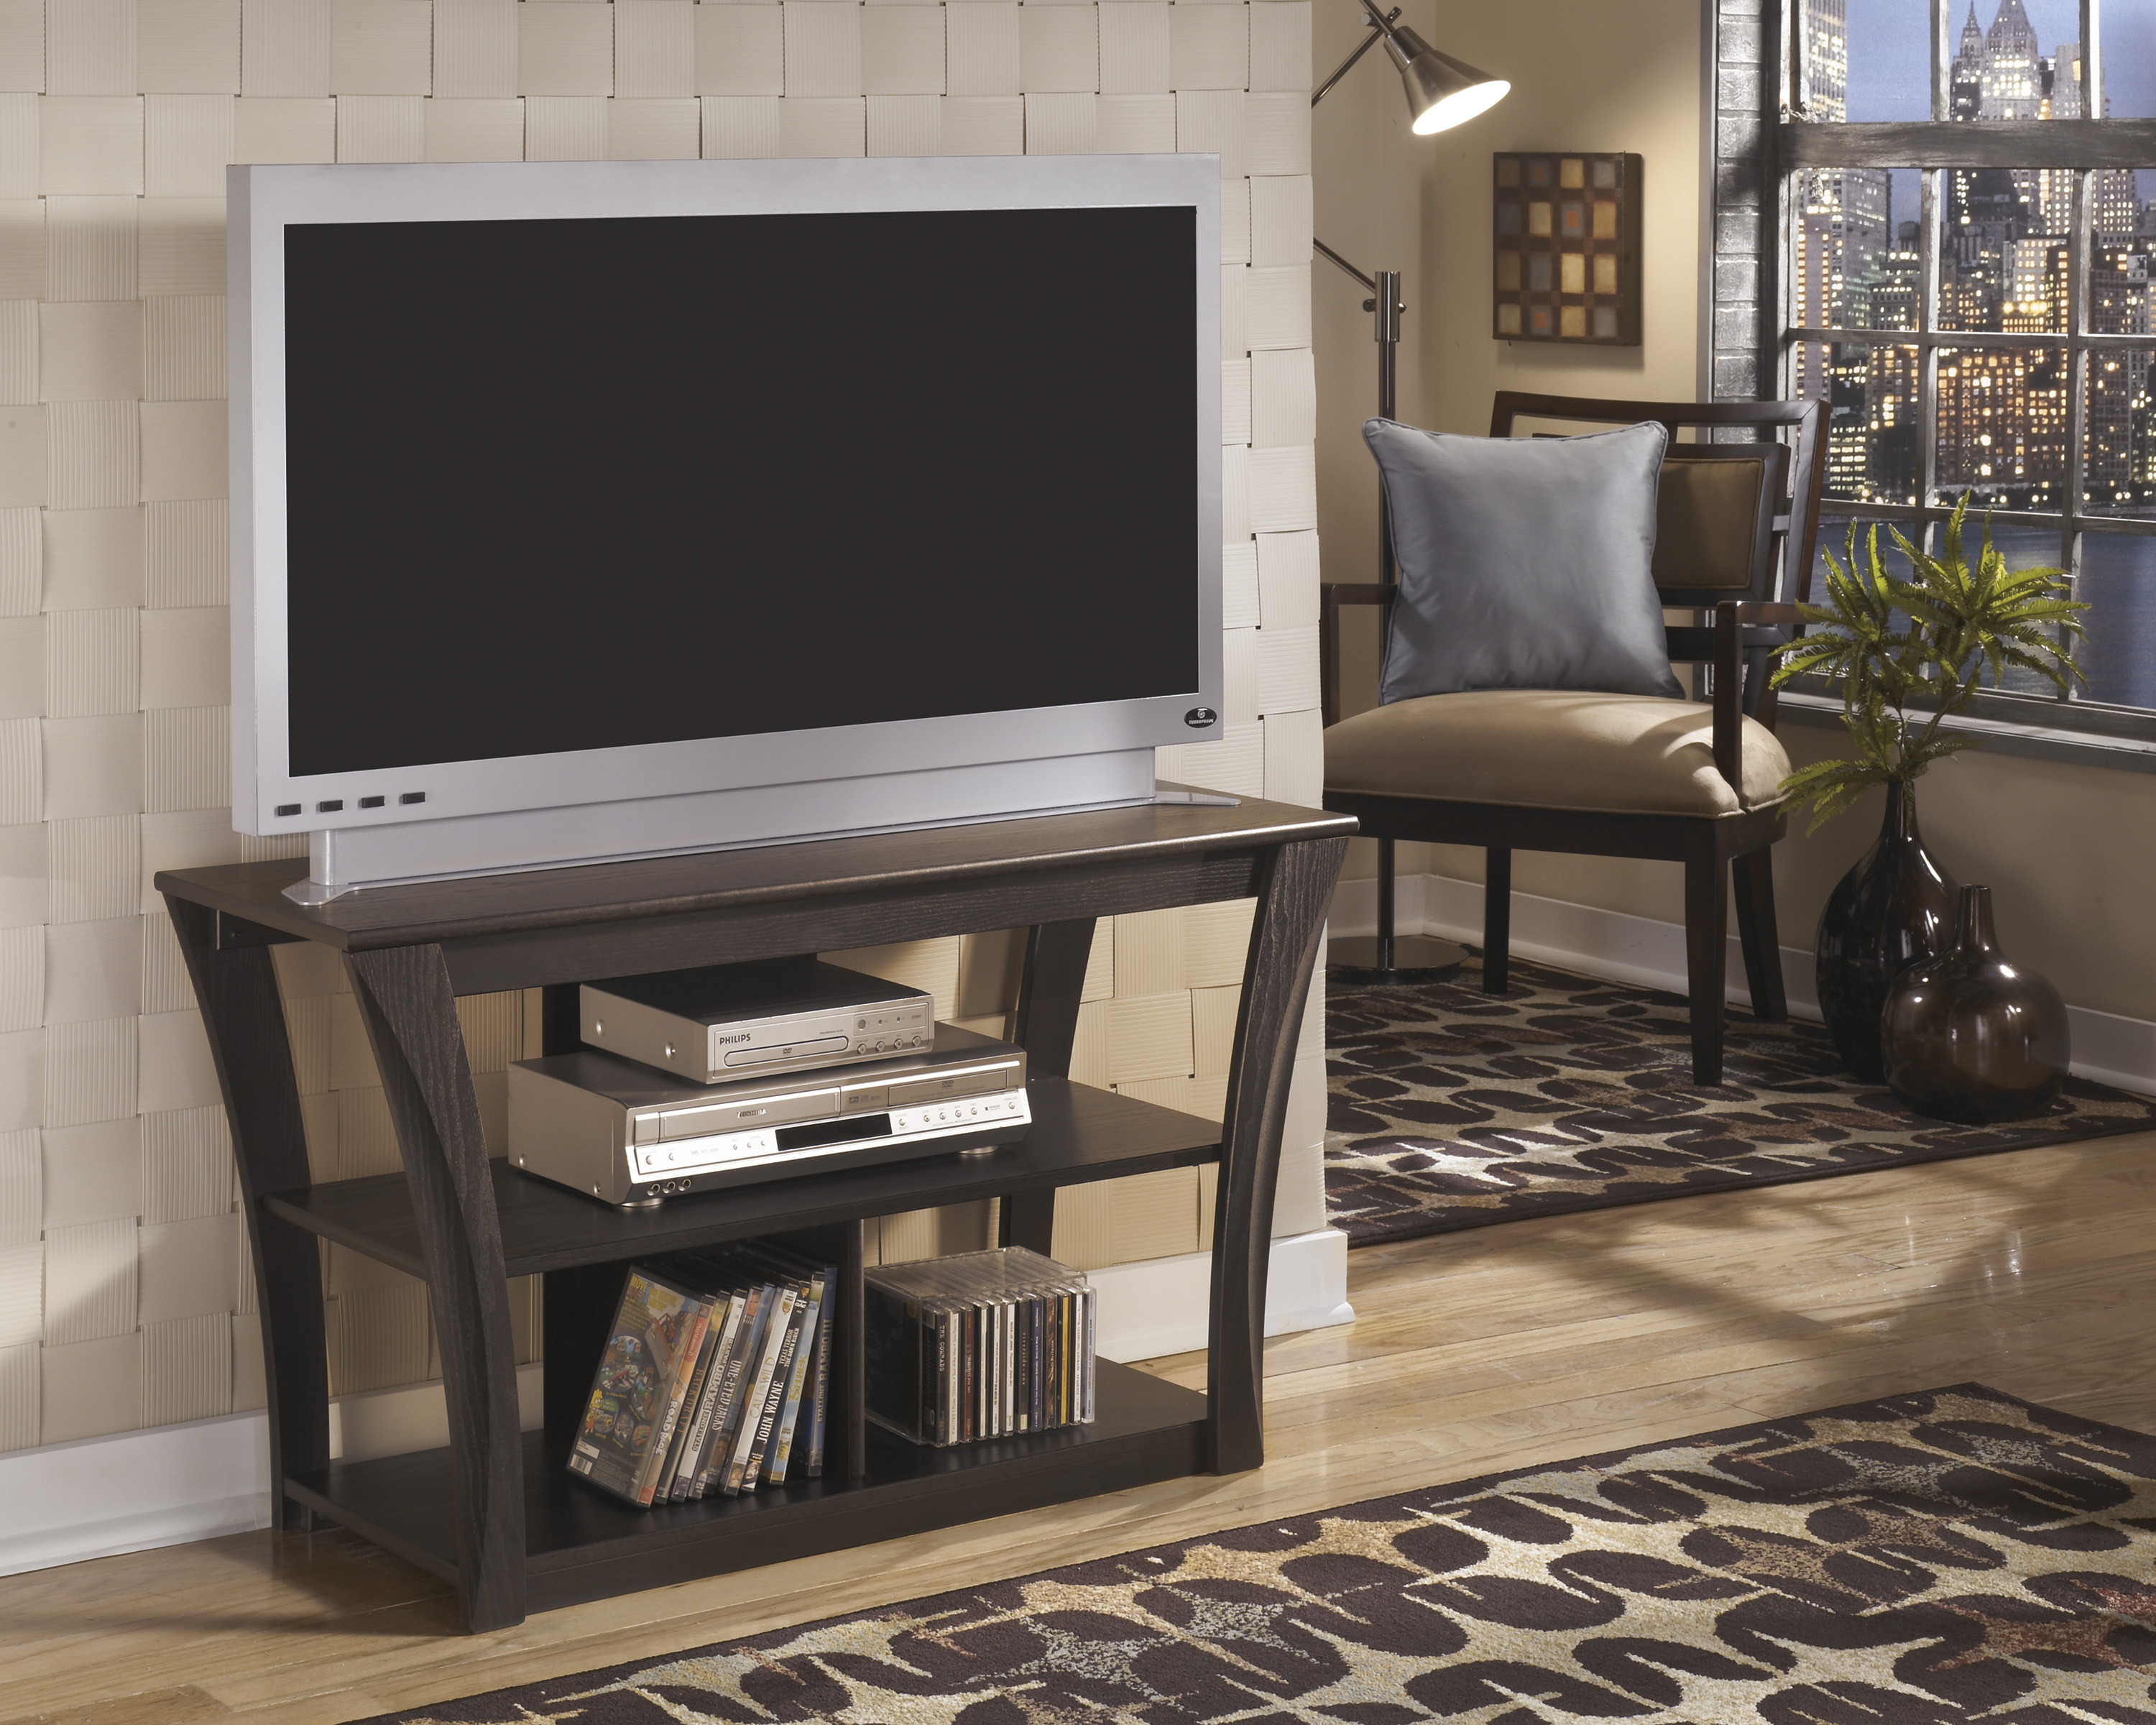 Https://www.localfurnitureoutlet/mattresses.html 2018-11-15 inside Casey Umber 66 Inch Tv Stands (Image 8 of 30)